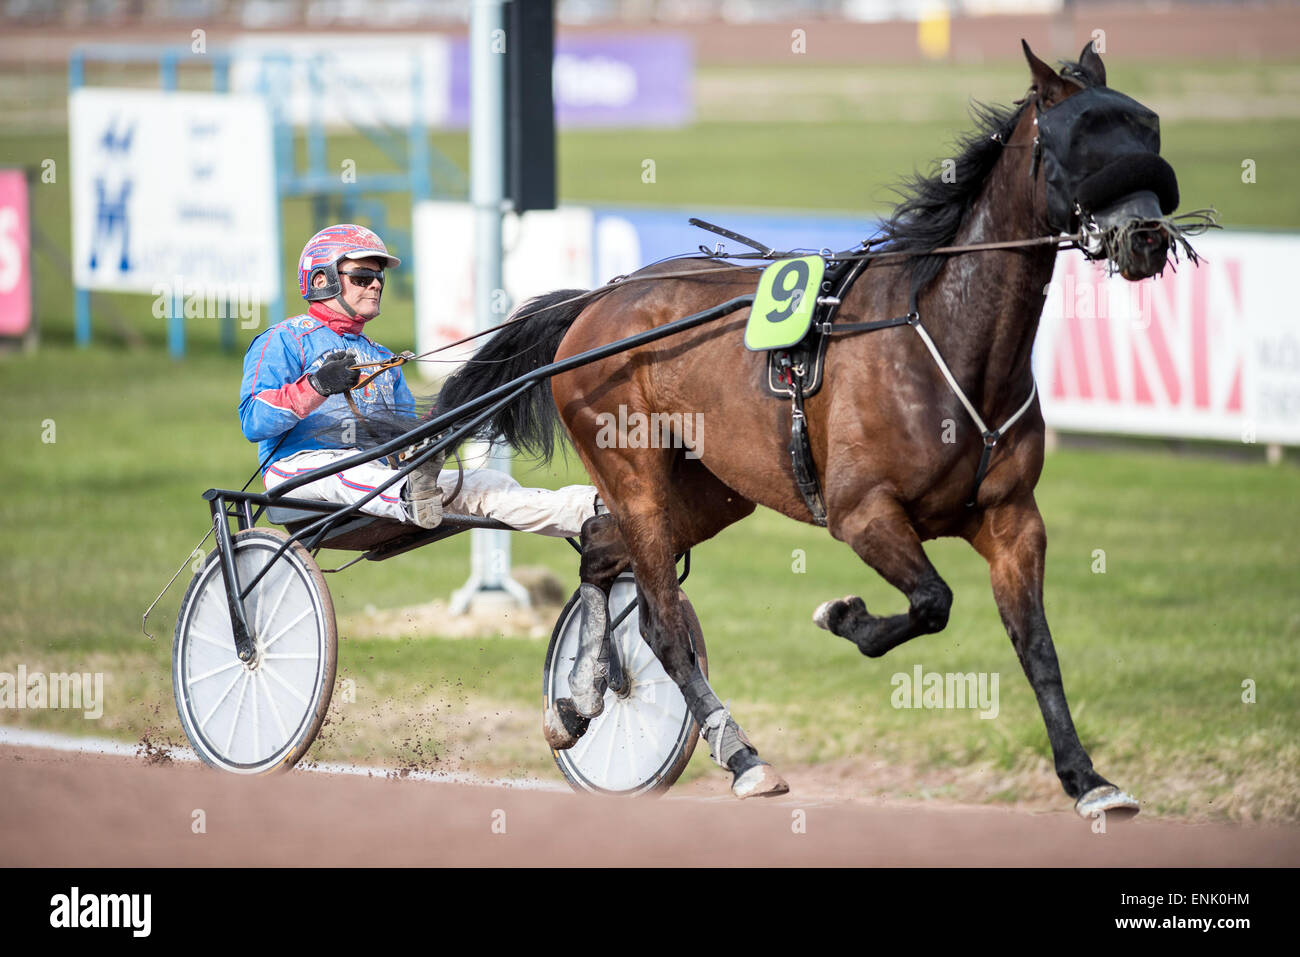 Harness driver Torbjörn Jansson in the sulky preparing Vacqueyras for a race at Mantorp harness race course. - Stock Image